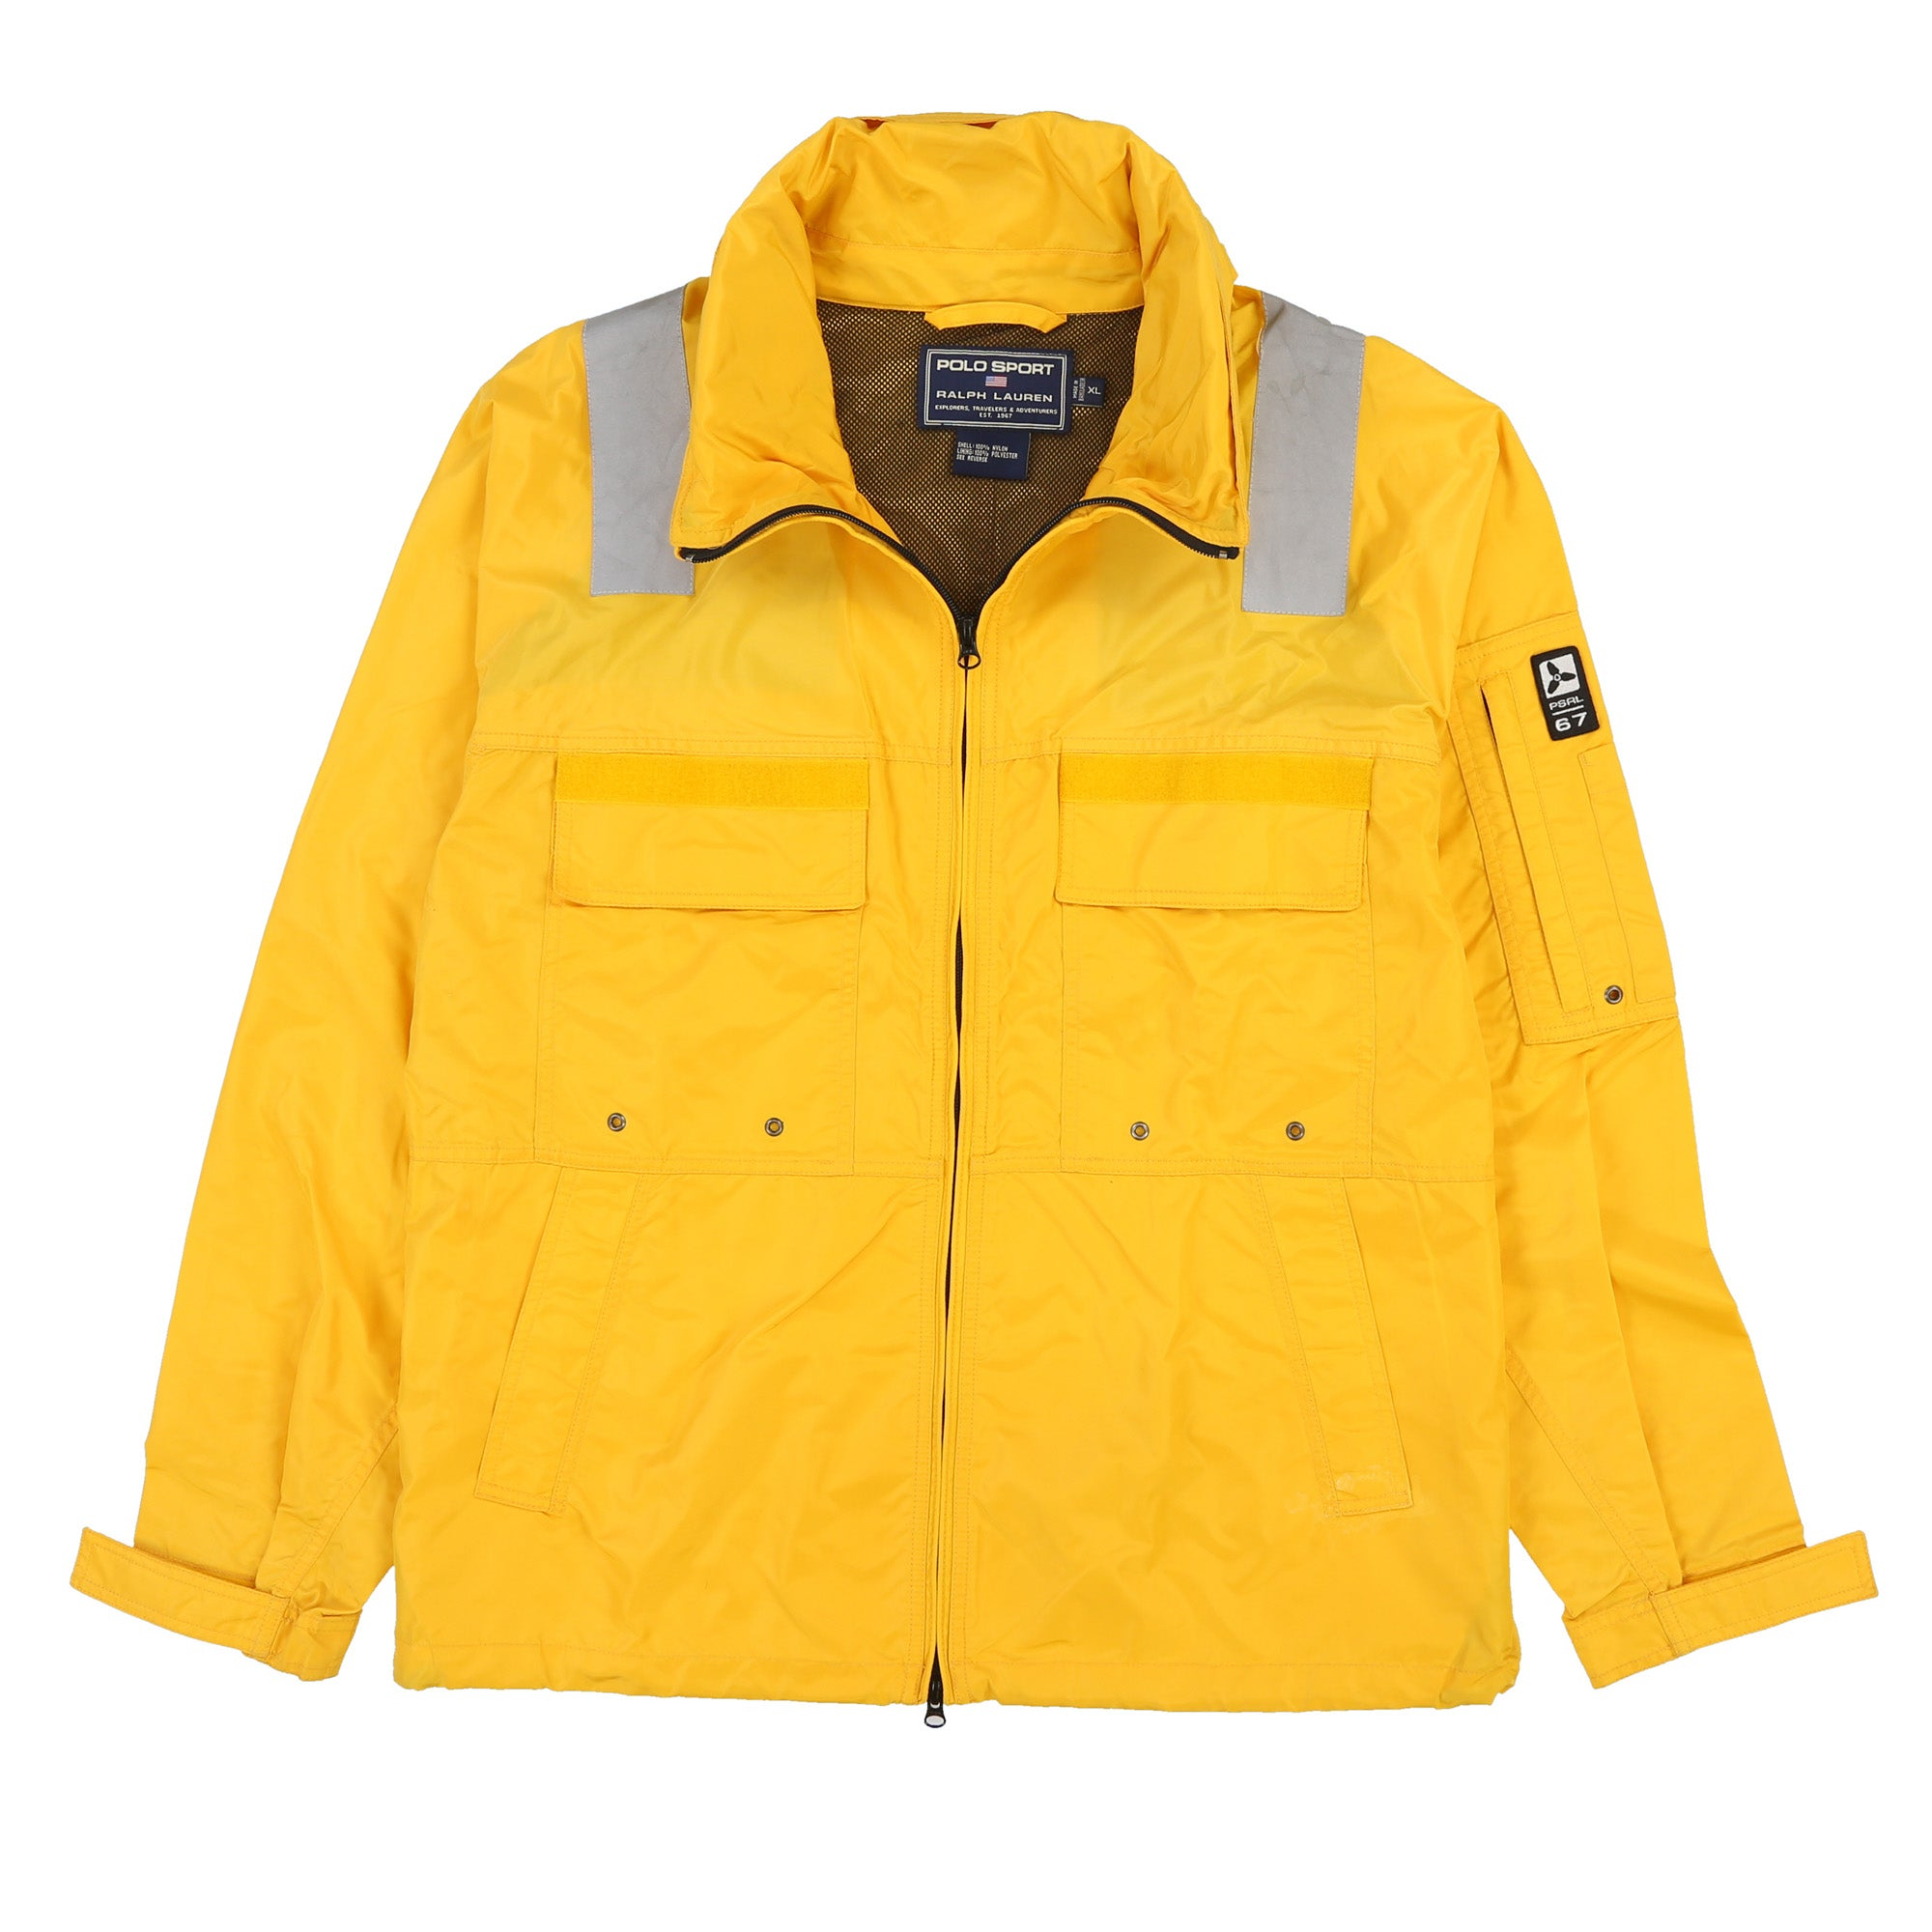 POLO SPORT PROPELLER JACKET // YELLOW